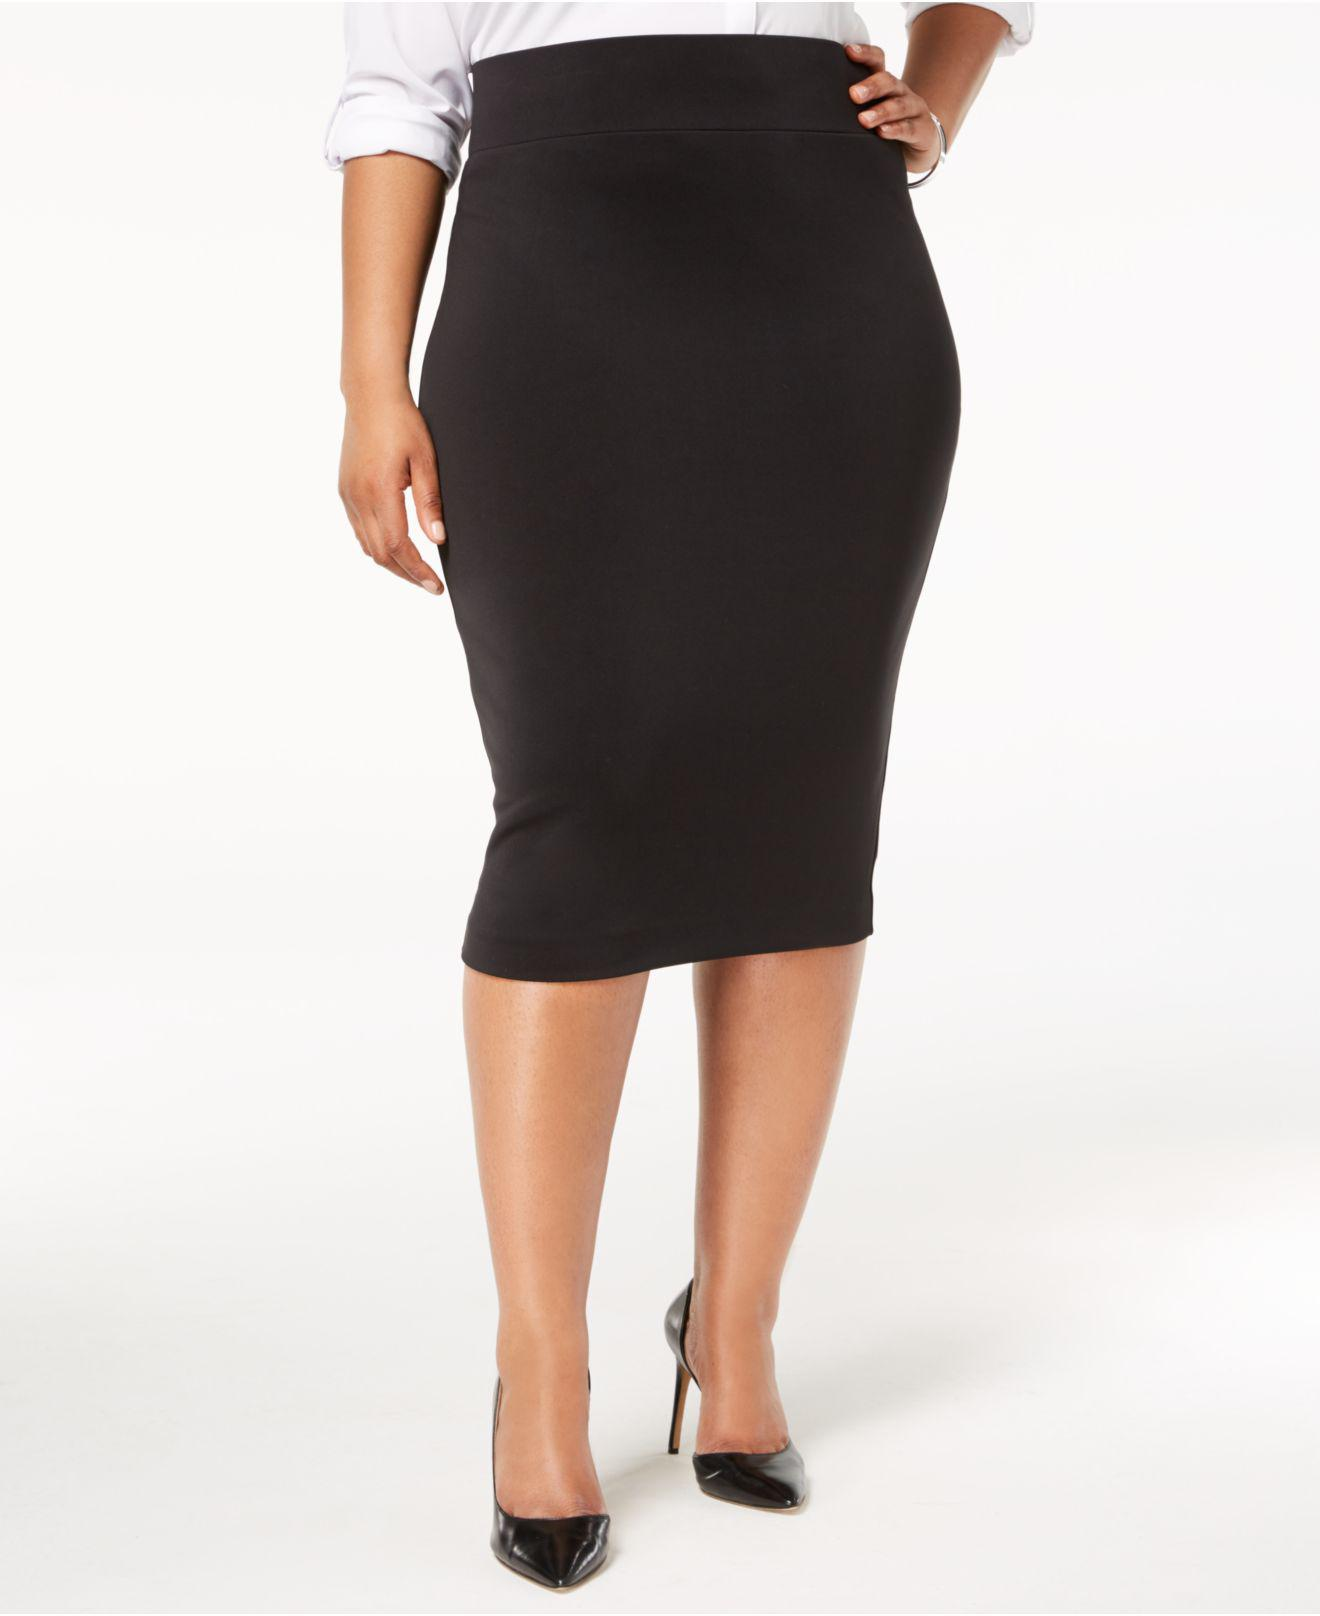 eac4eb7dd01 Lyst - Alfani Plus Size Knit Pencil Skirt in Black - Save 21%